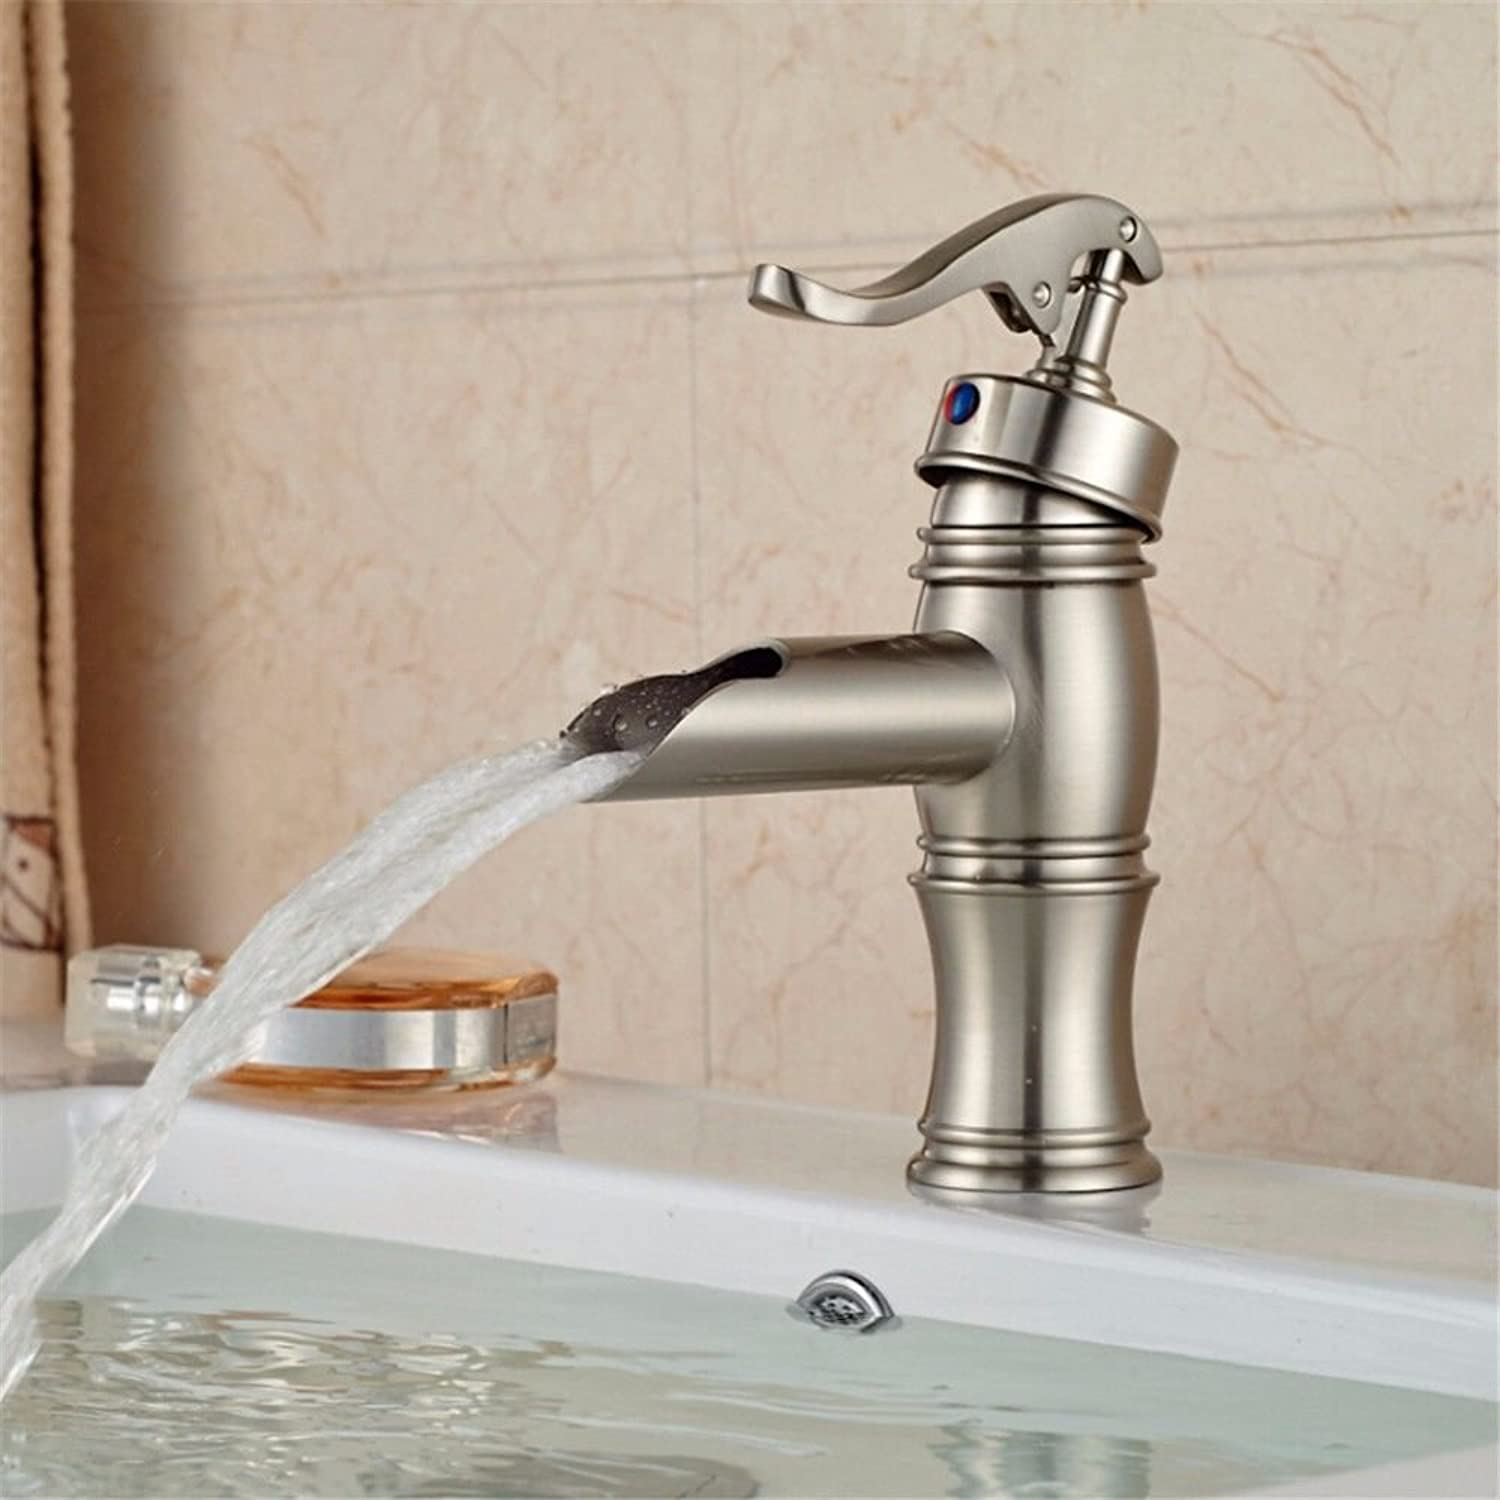 SADASD Modern High Quality Full Copper Bathroom Basin Faucet Single Treatment Waterfall Boat Sinking Deck Mountain Small Hot Cold Wash Basin Sink Taps Single Hole Single Handle Ceramic Valve Hot And Cold Water Mixer Tap With G1 2 Hose